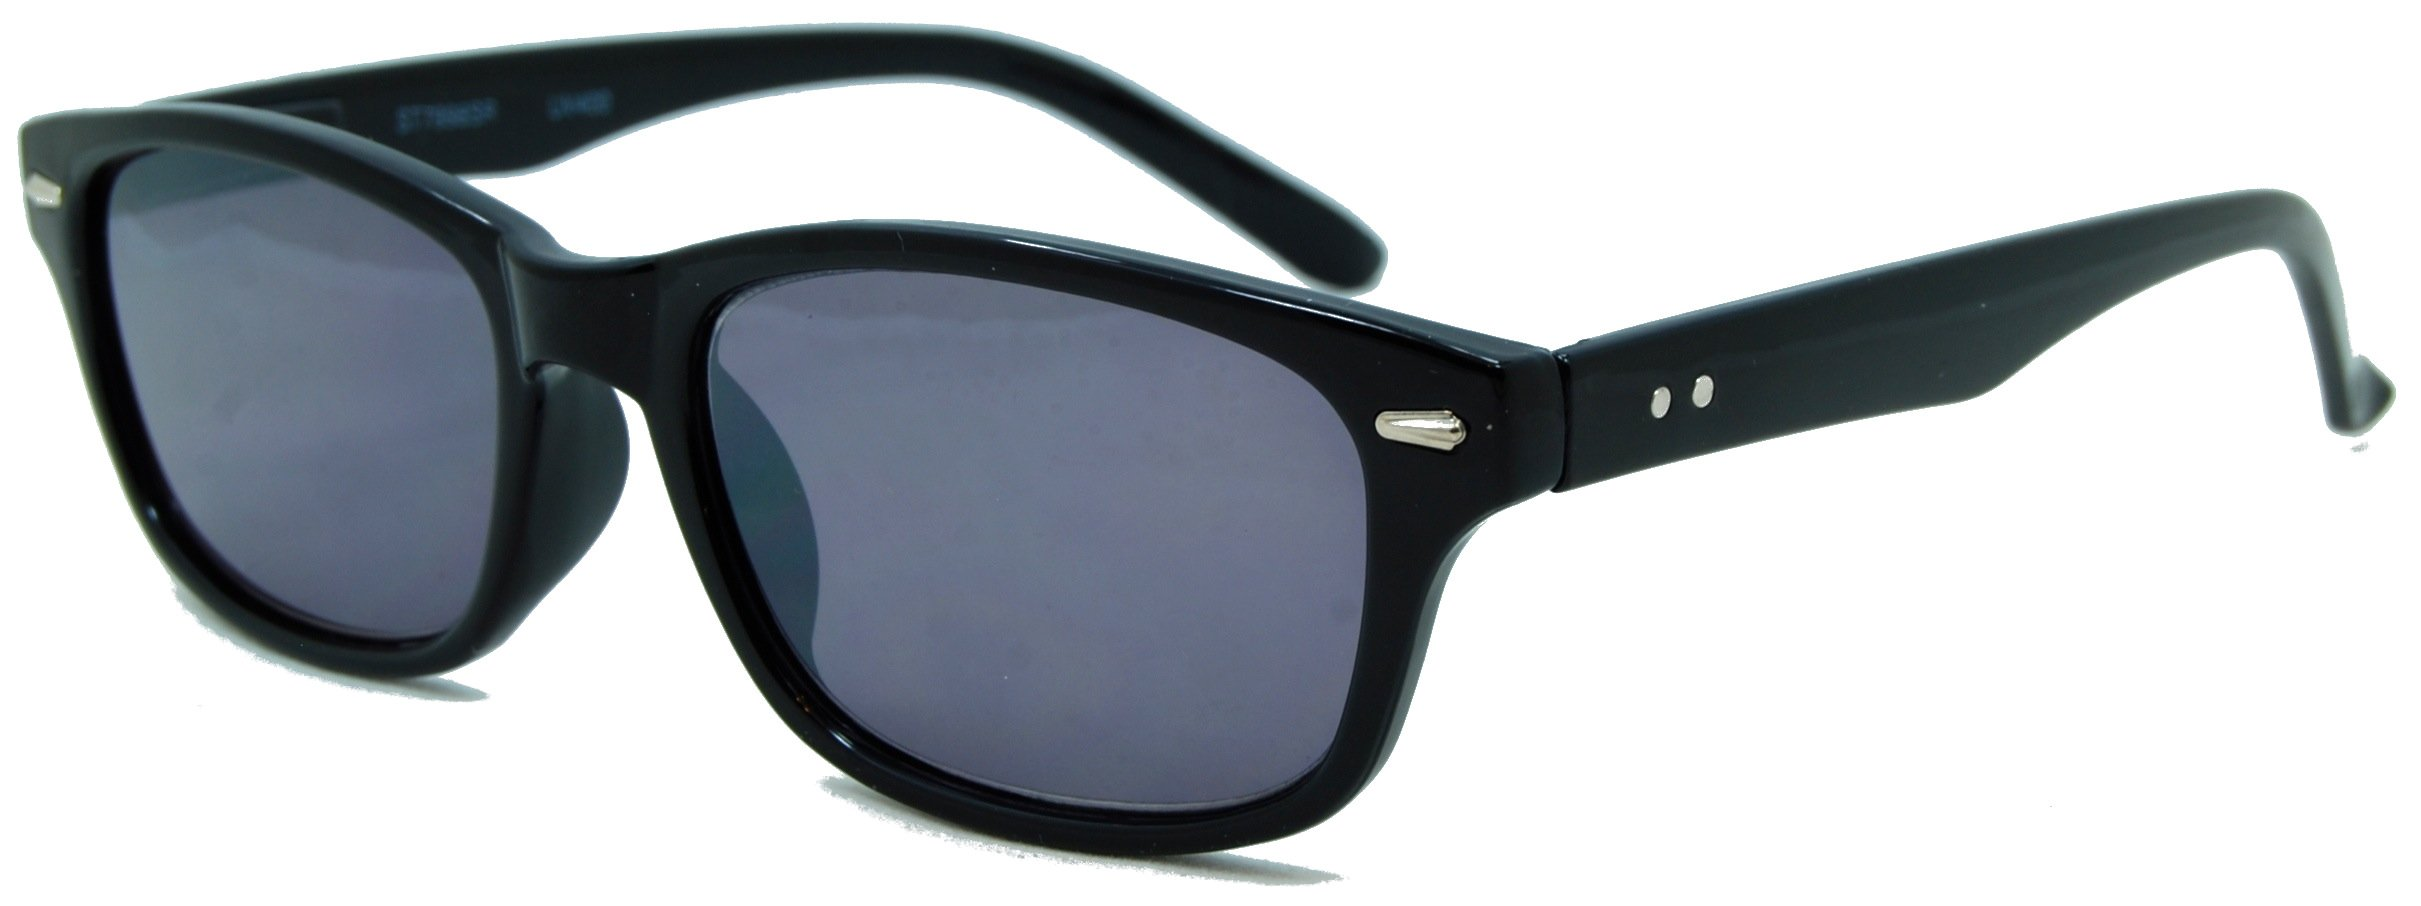 InSight, Classic Full Reader Sunglasses. Not BiFocals/Black/2.25 Strength by In Style Eyes